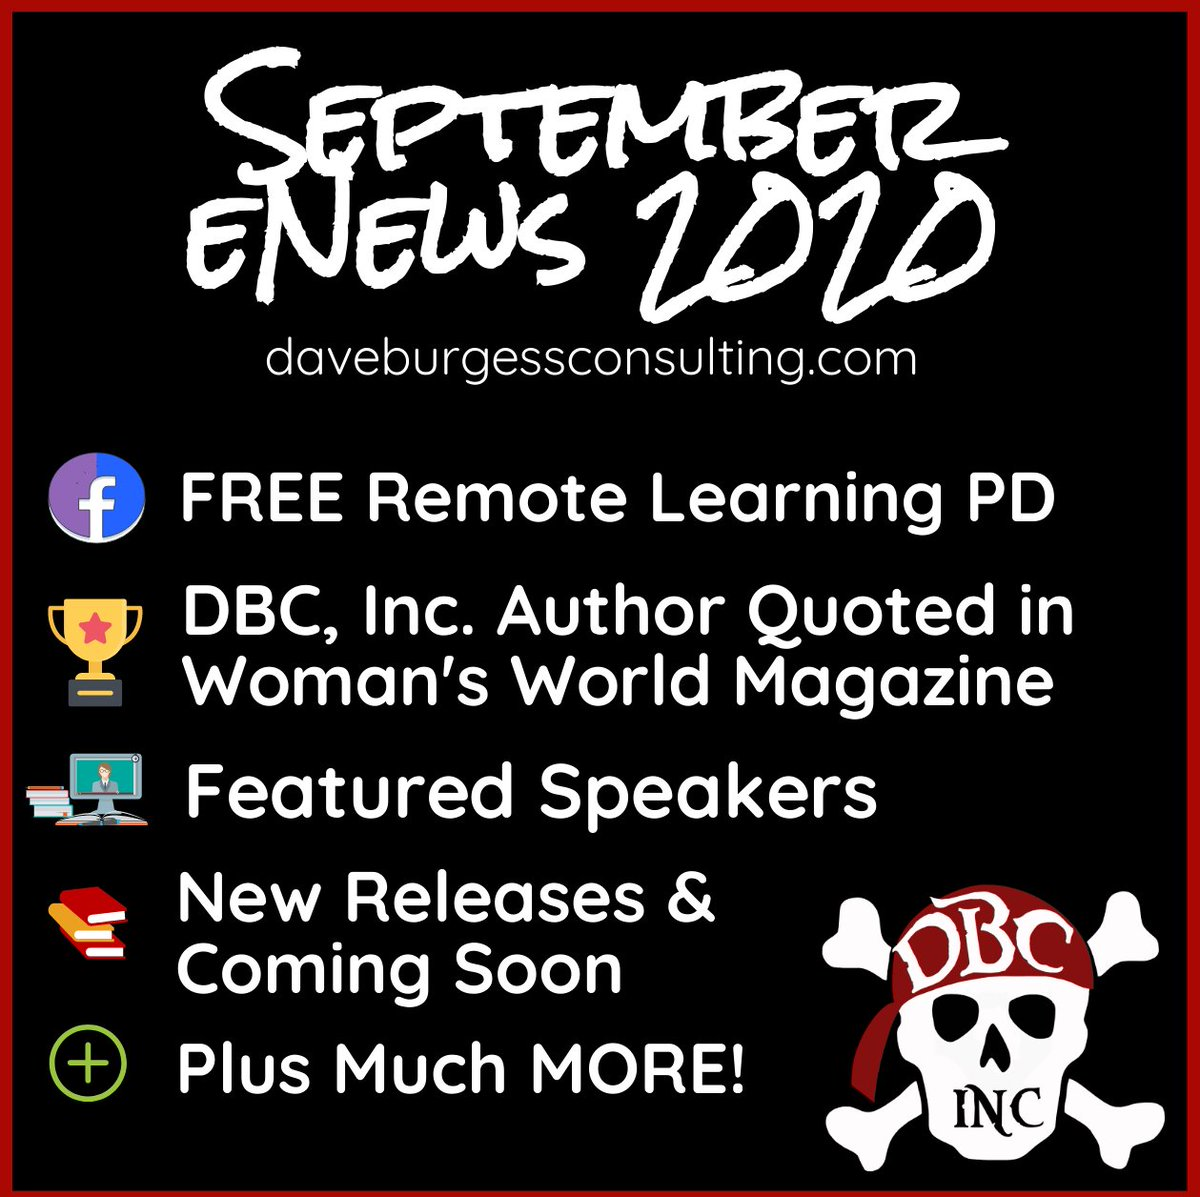 Sept. eNews 2020 -FREE PD w/@annkozma723& @Beyond_the_Desk on DBC FB Live Fall Series -A DBC author quoted in the Woman's World magazine last month!  - Virtual Speaking -New & Coming Soon Books +More https://t.co/q4QC3lgwzm #tlap #LeadLAP #dbcincbooks @burgessdave @TaraMartinEDU https://t.co/KdVHY91cV9